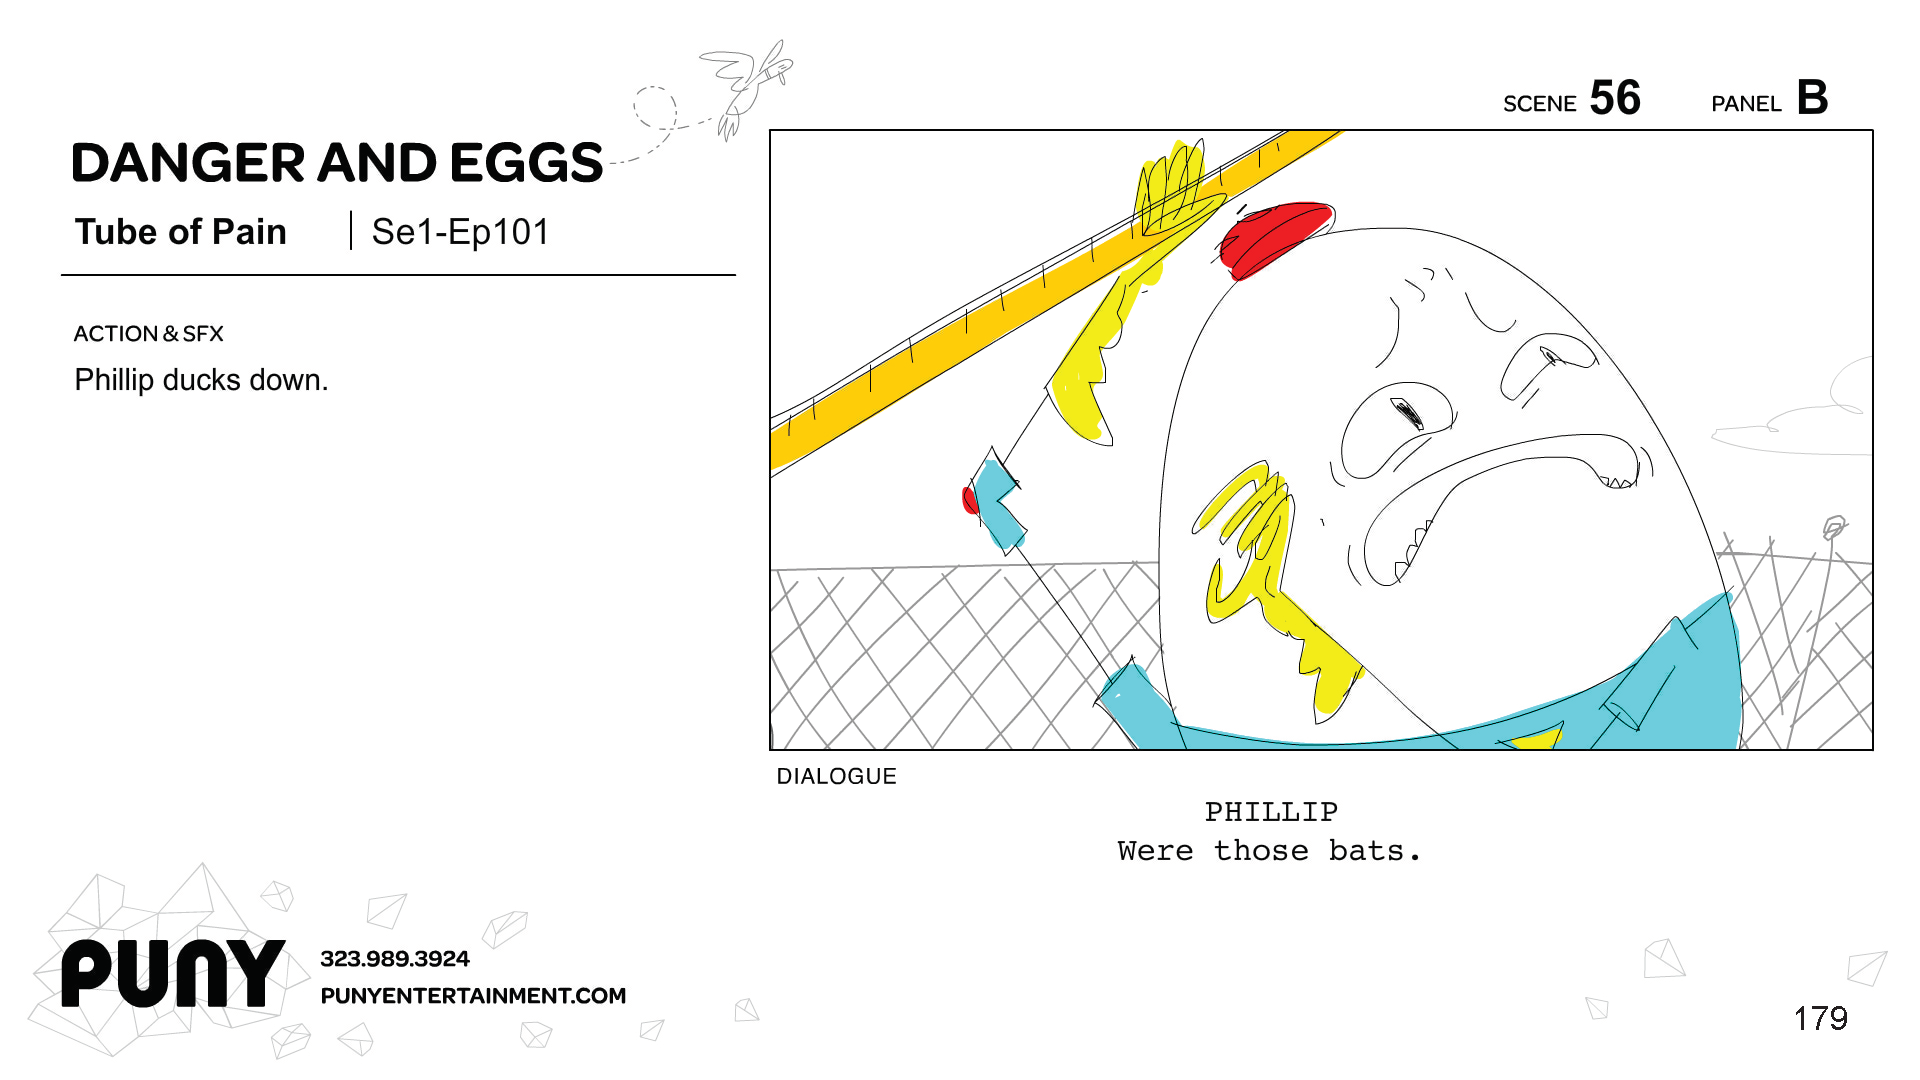 MikeOwens_STORYBOARDS_DangerAndEggs_Page_179.png